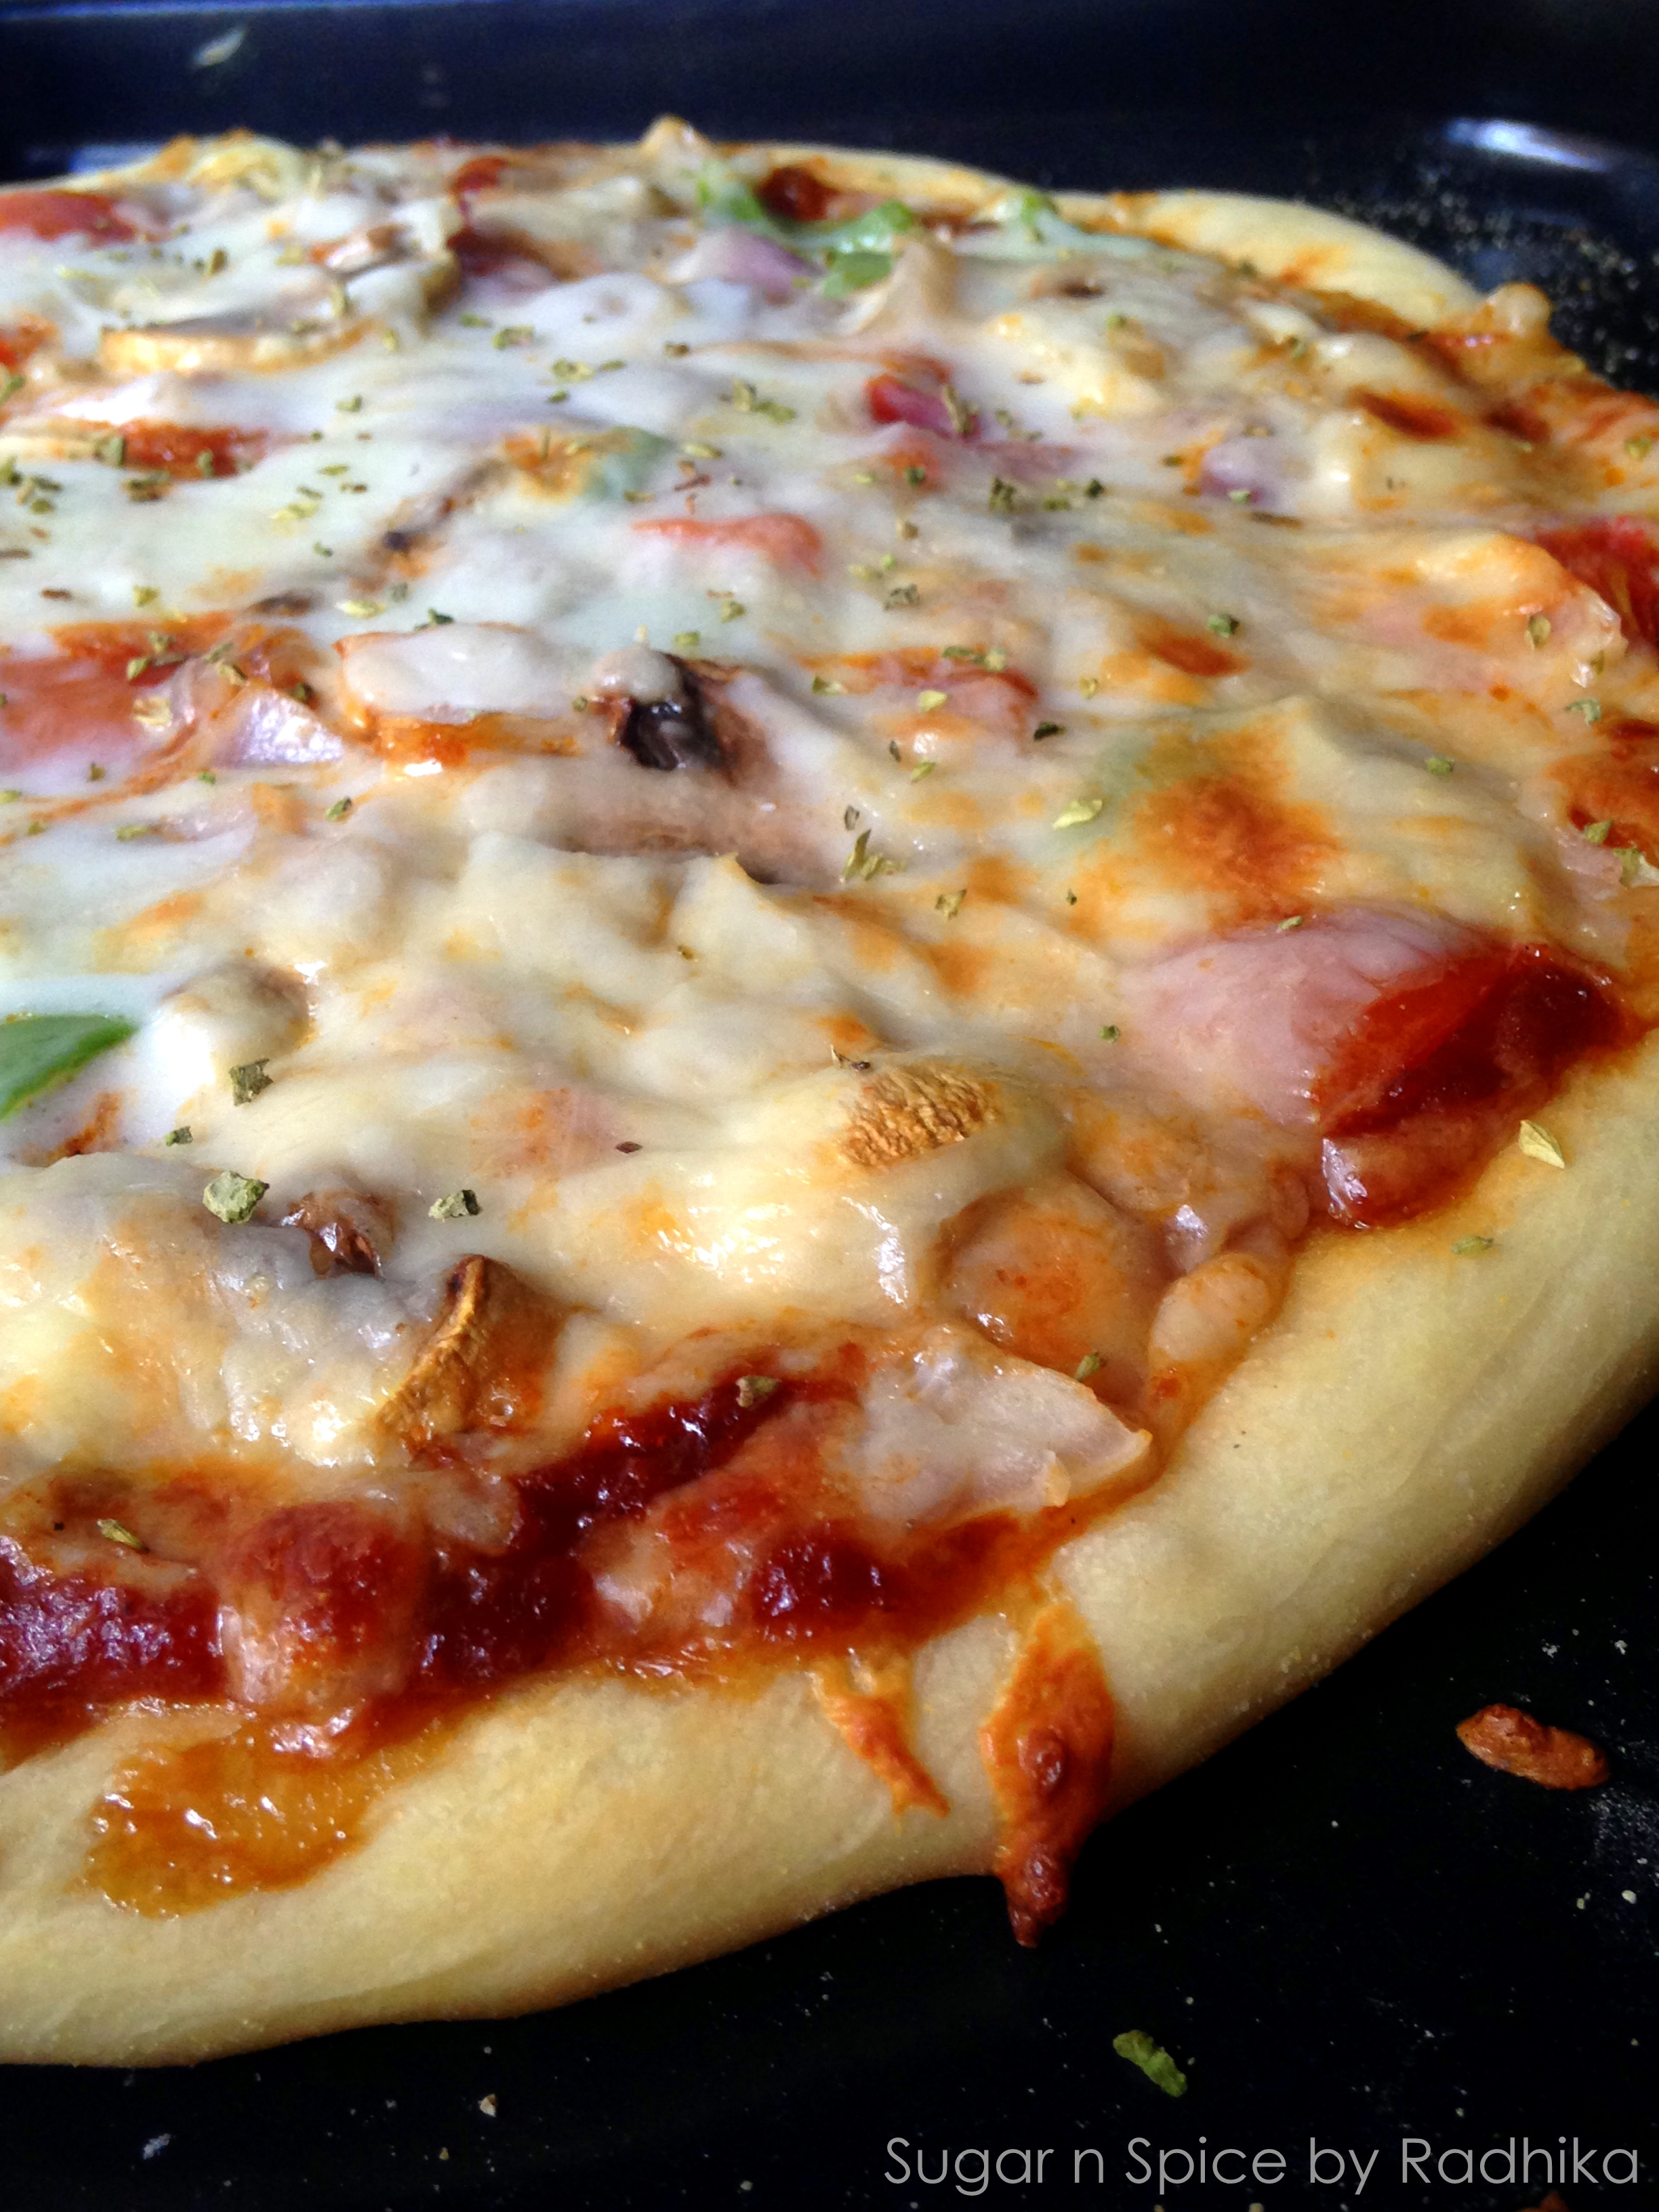 how to make pizza at home without yeast and oven